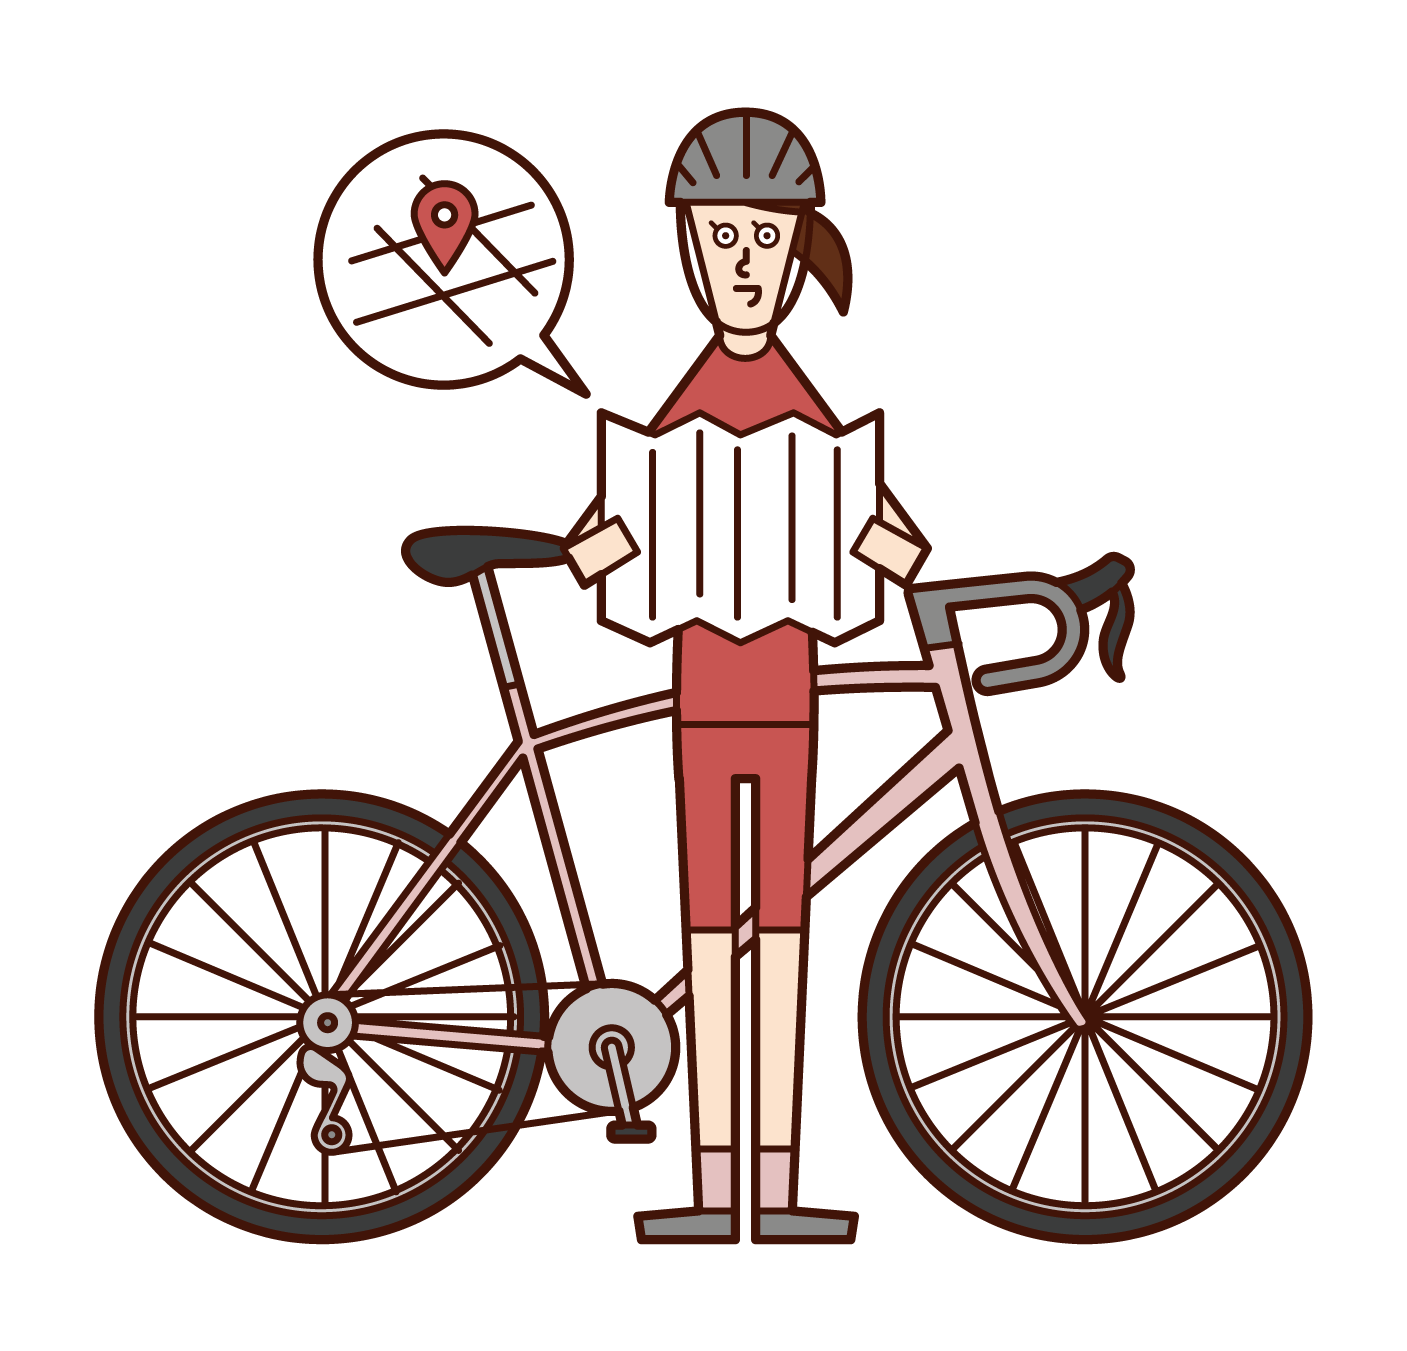 Illustration of a bicycle rider (woman) looking out at the map